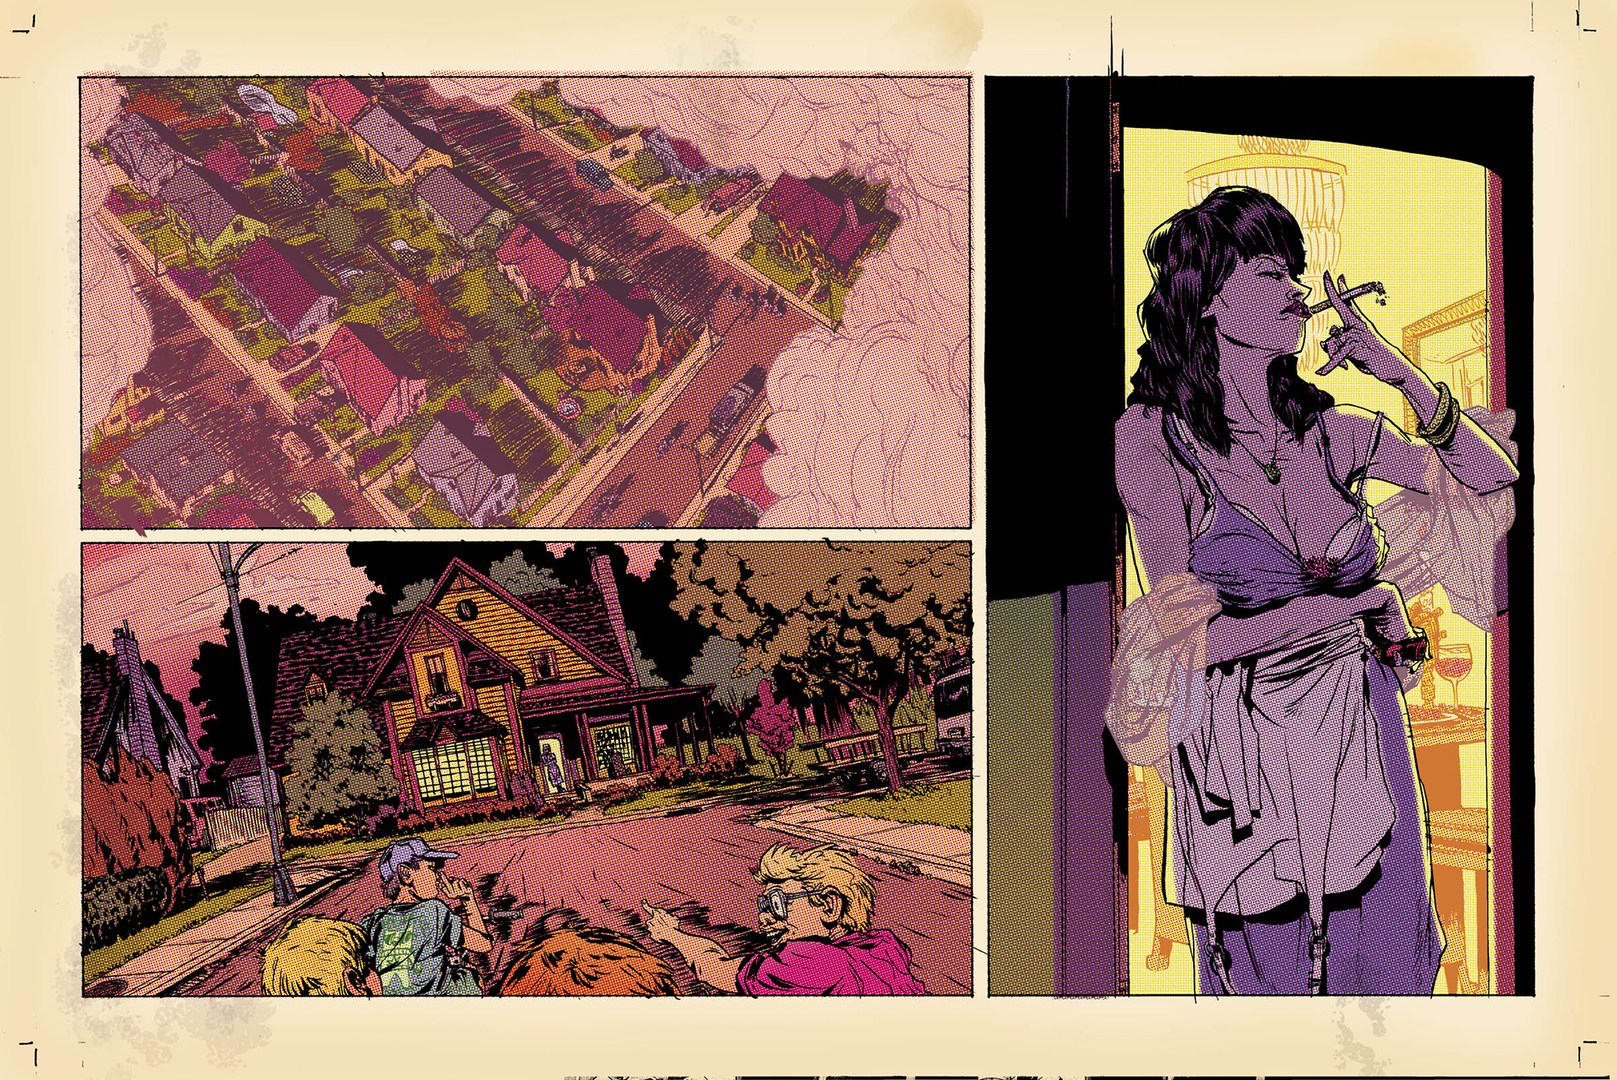 A comic spread shows three detailed panels in shades of red, green, purple, and yellow. The first panel shows an overhead view of a suburban neighborhood. The second shows figures pointing toward a yellow house. The third shows a scowling feminine figure with purple skin and dark hair smoking a cigarette in a neglige.